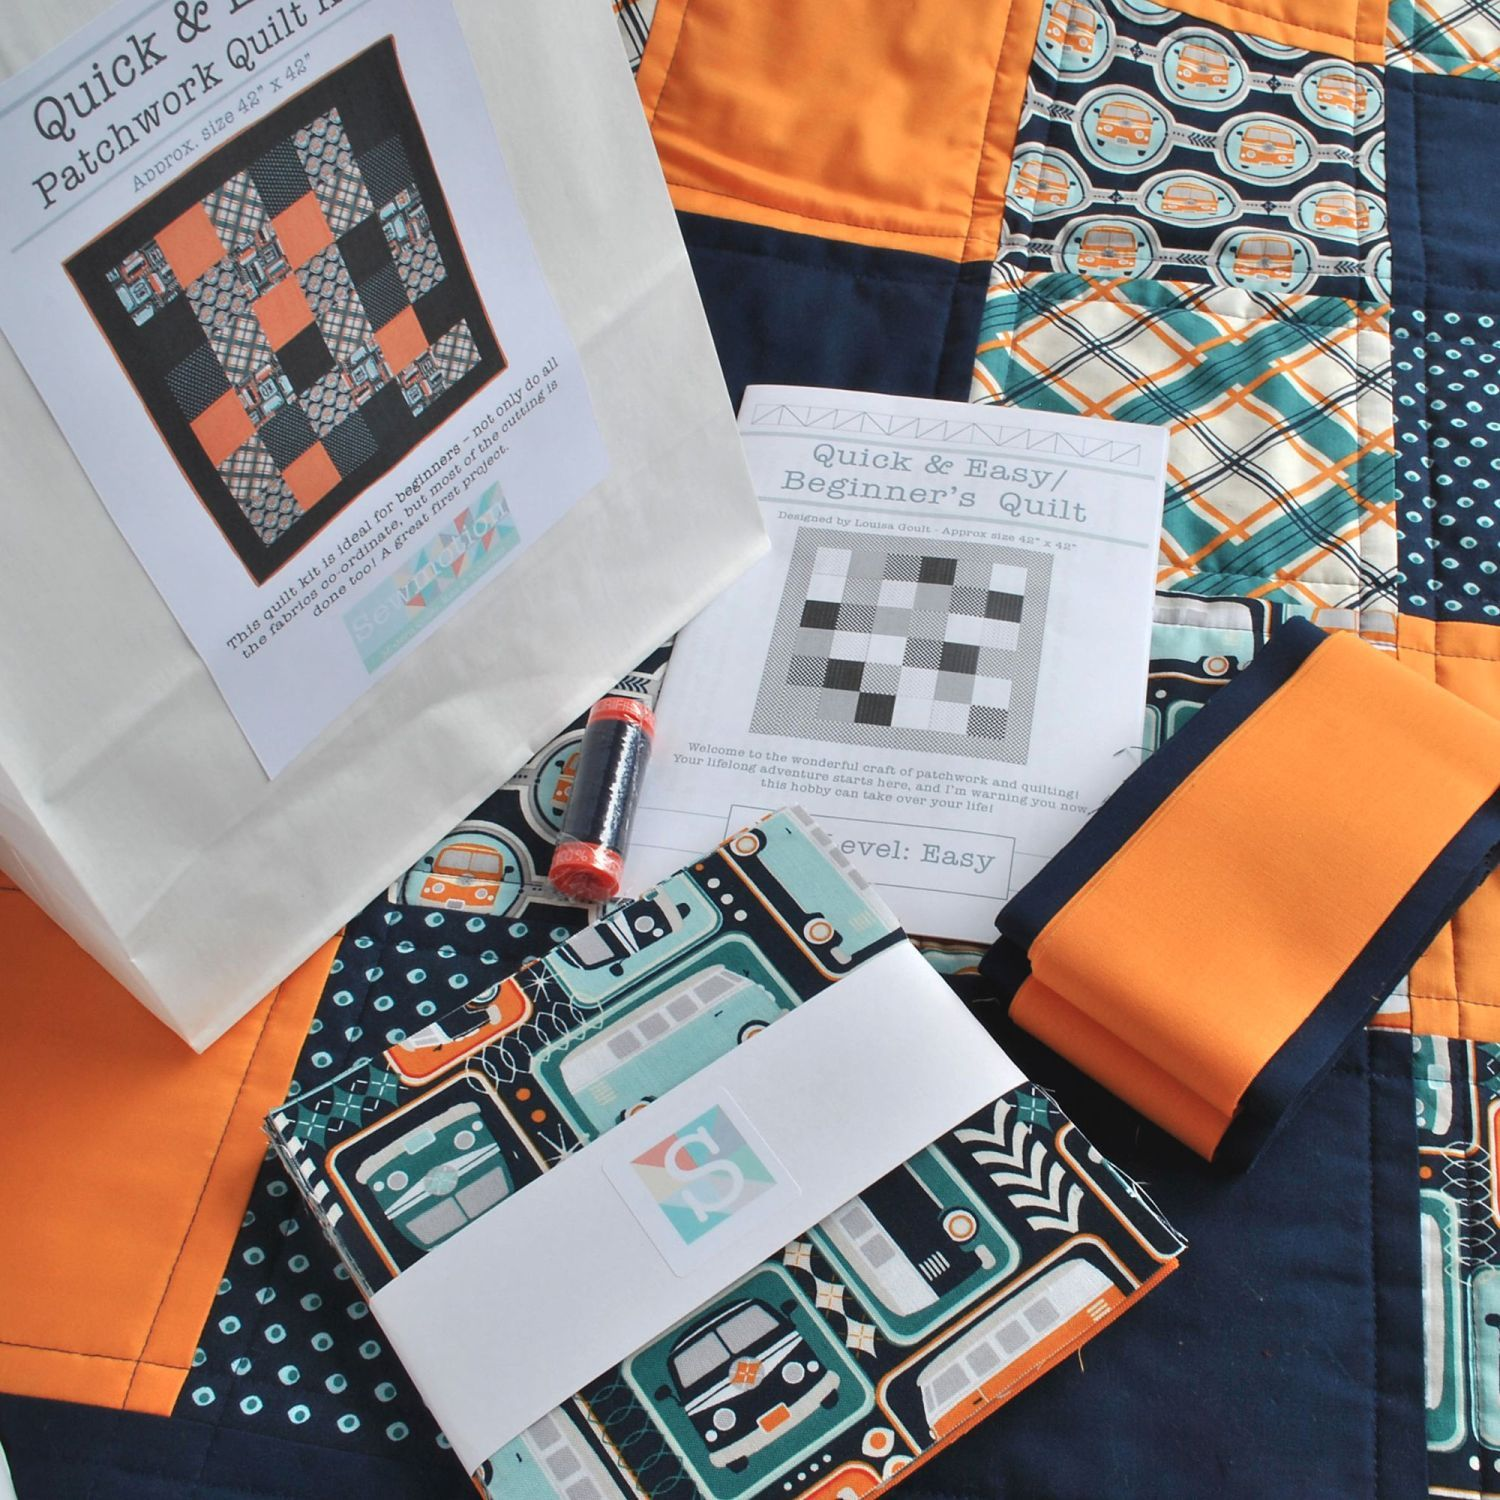 Quick & Easy Beginner's Quilt Kit in Riley Blake's Giraffes Crossing